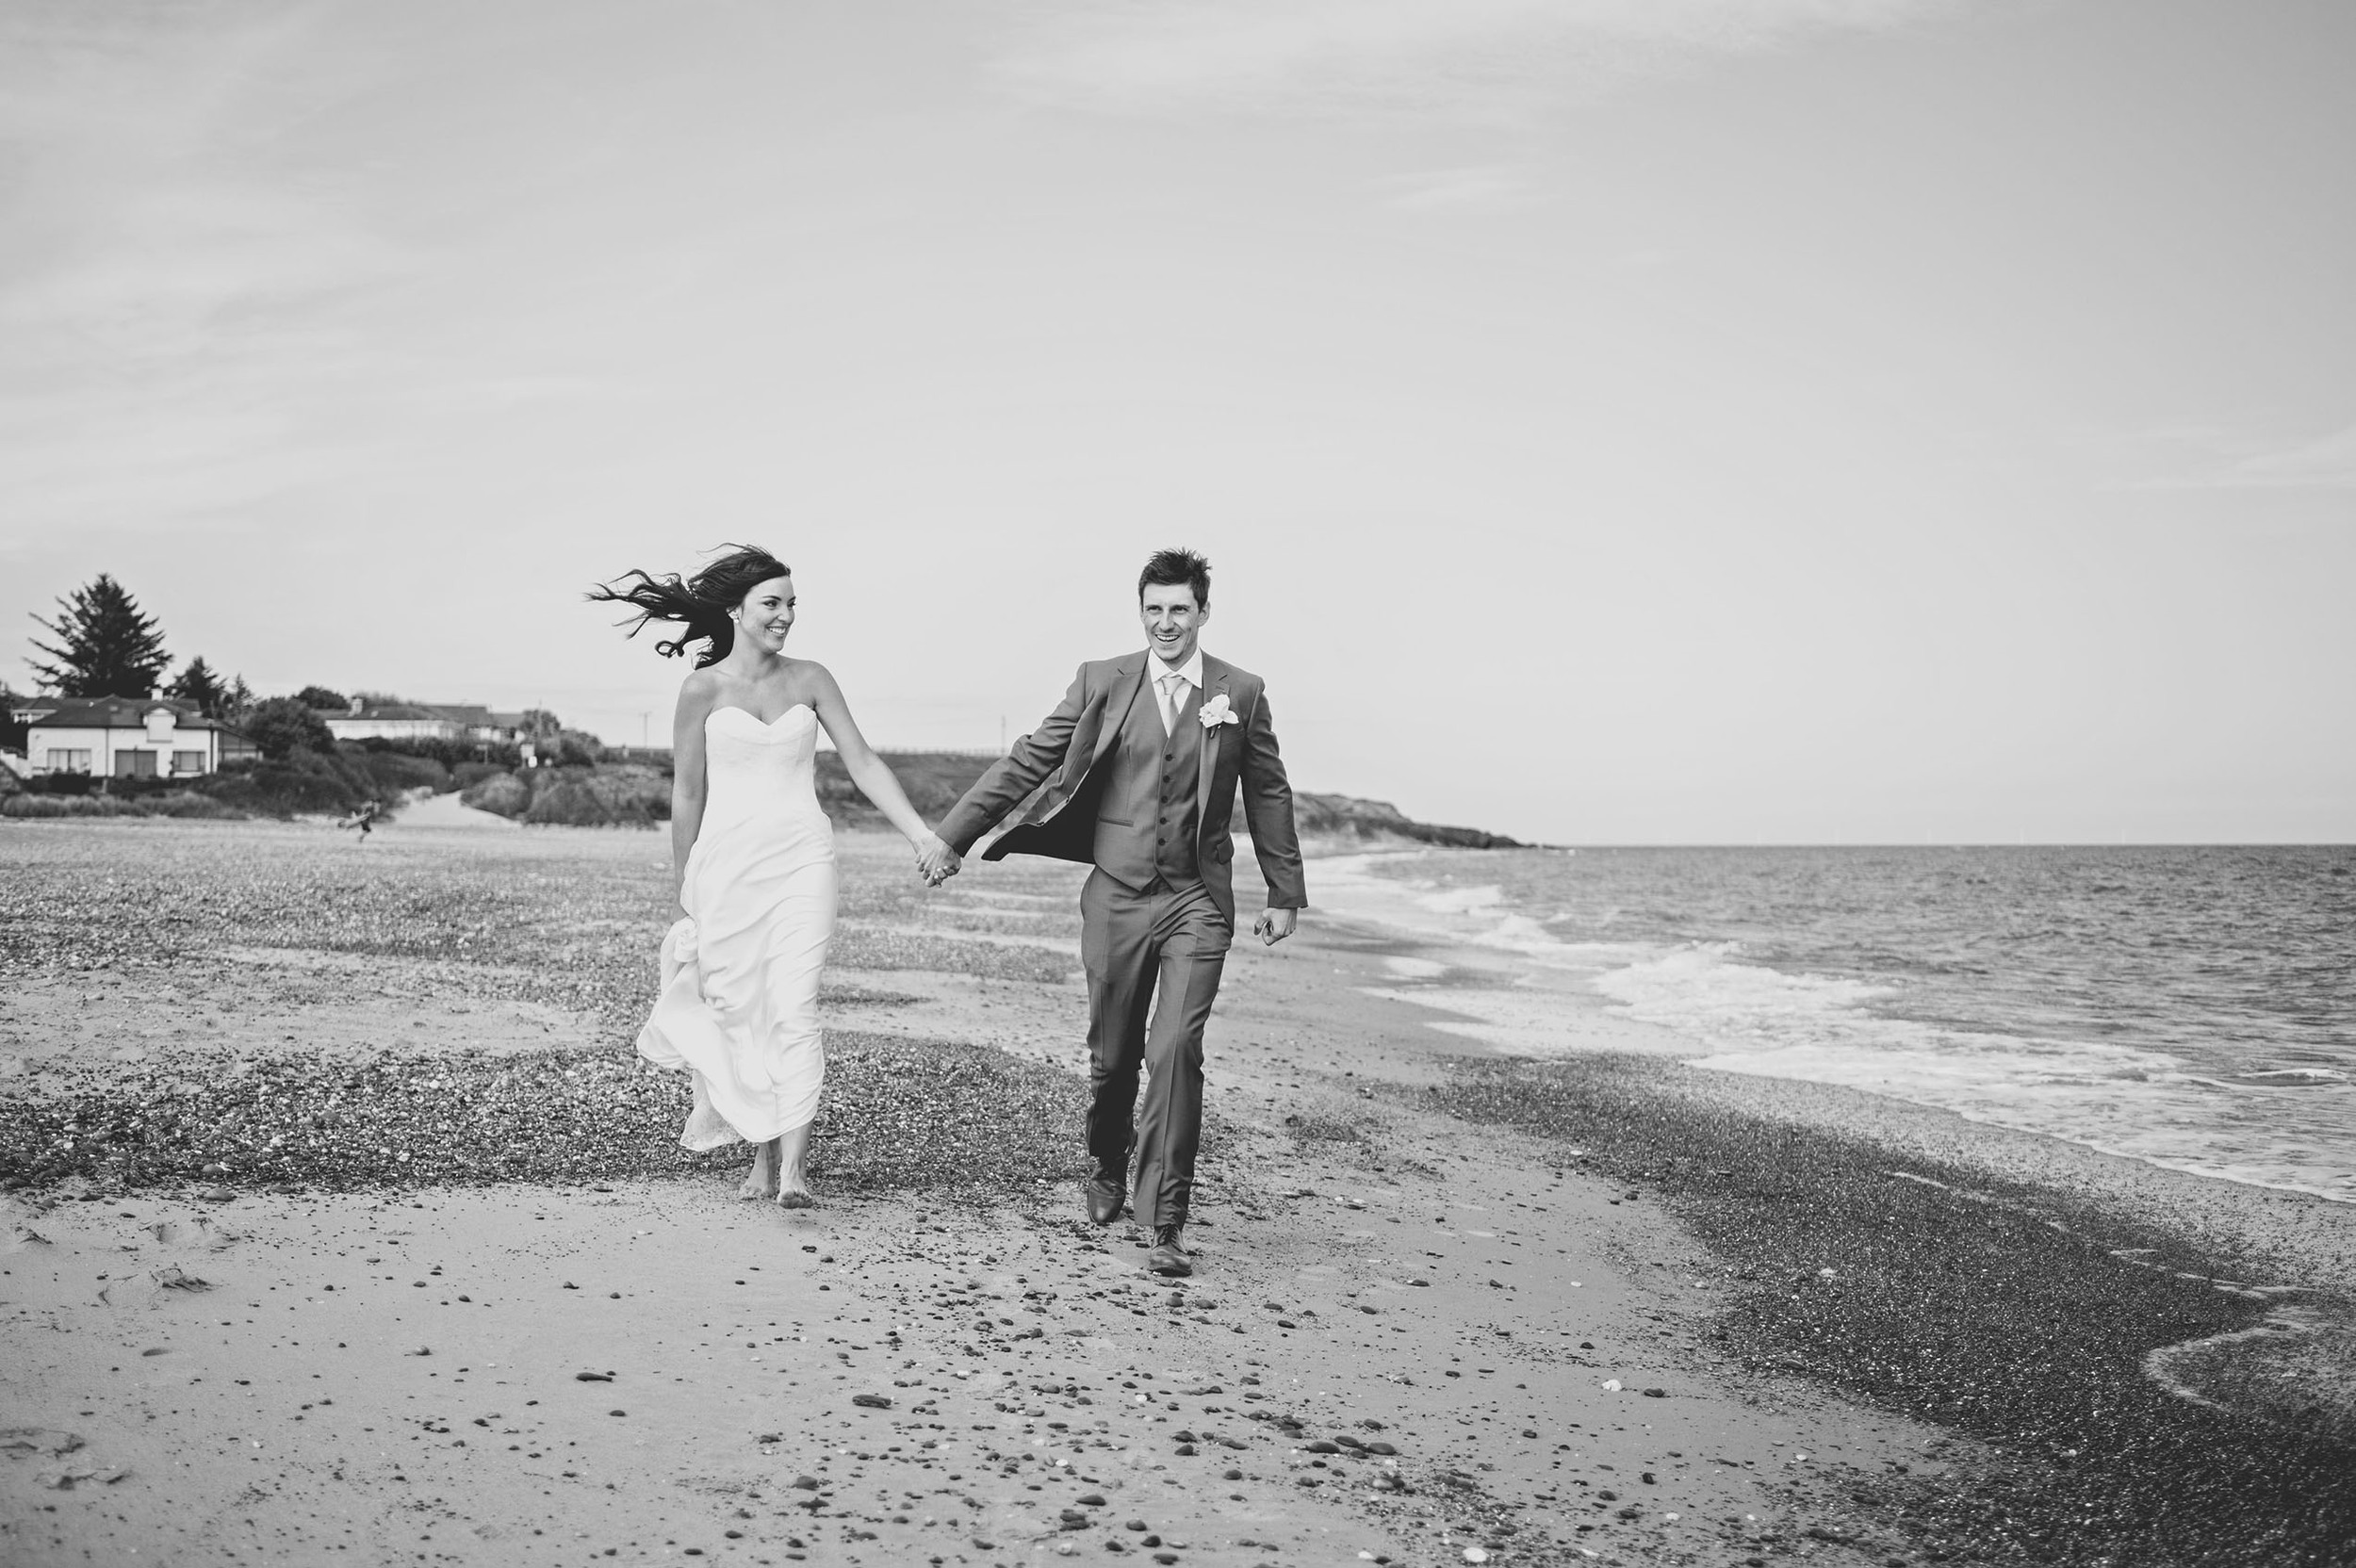 Julie & Matt's Seafield Wedding by Studio33weddings 081.jpg